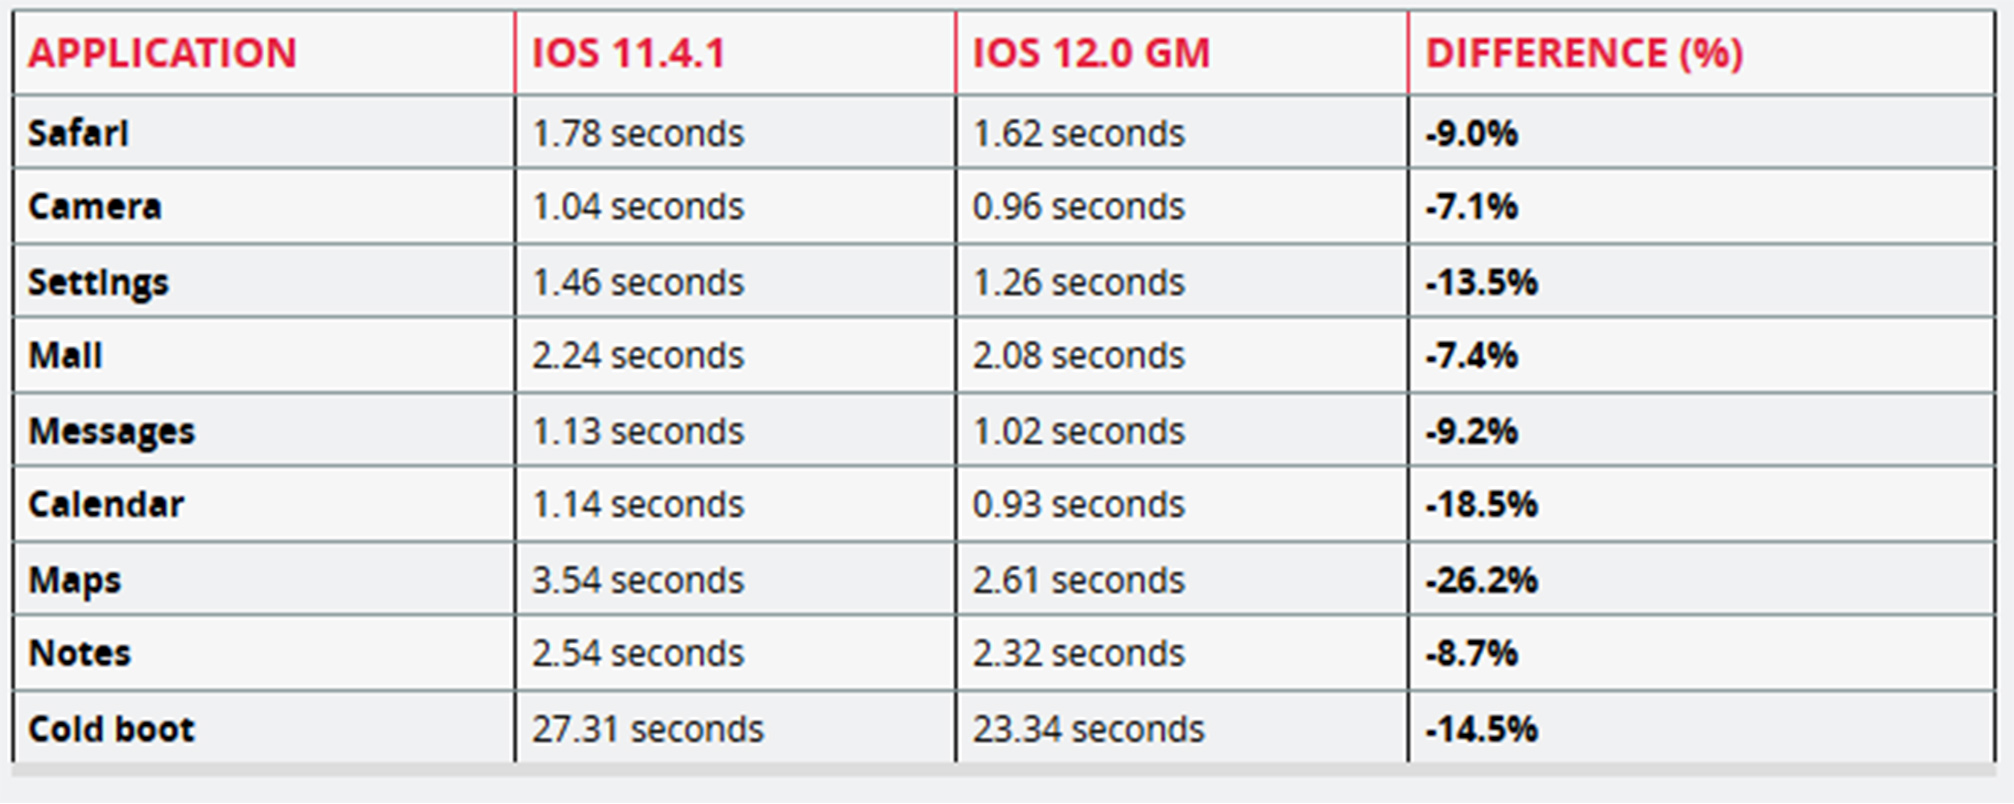 iPad Mini 2 test results